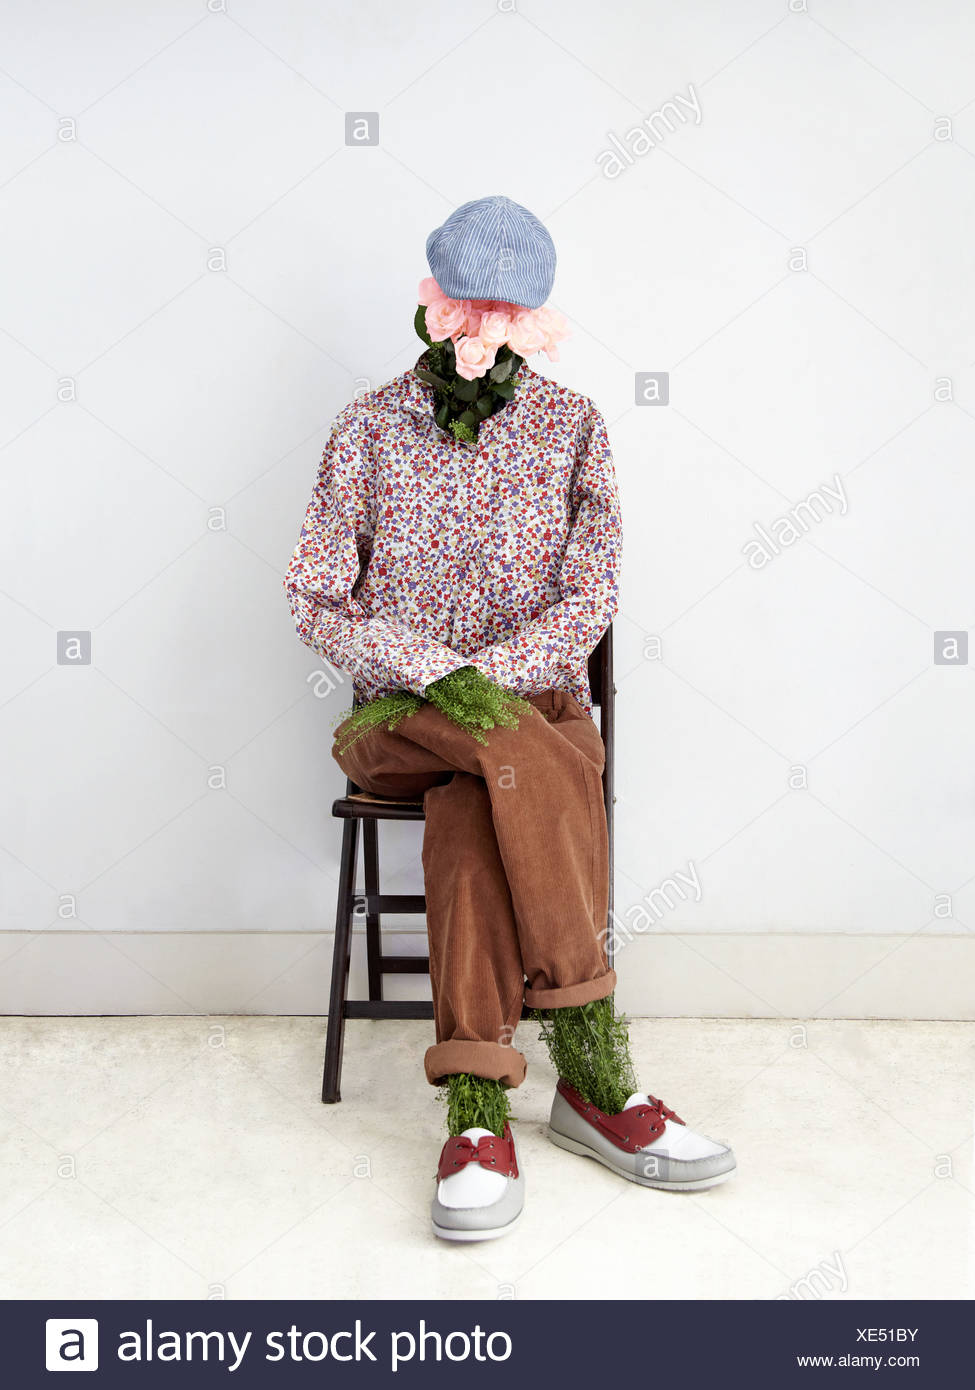 Model of man made of plants sitting on chair - Stock Image